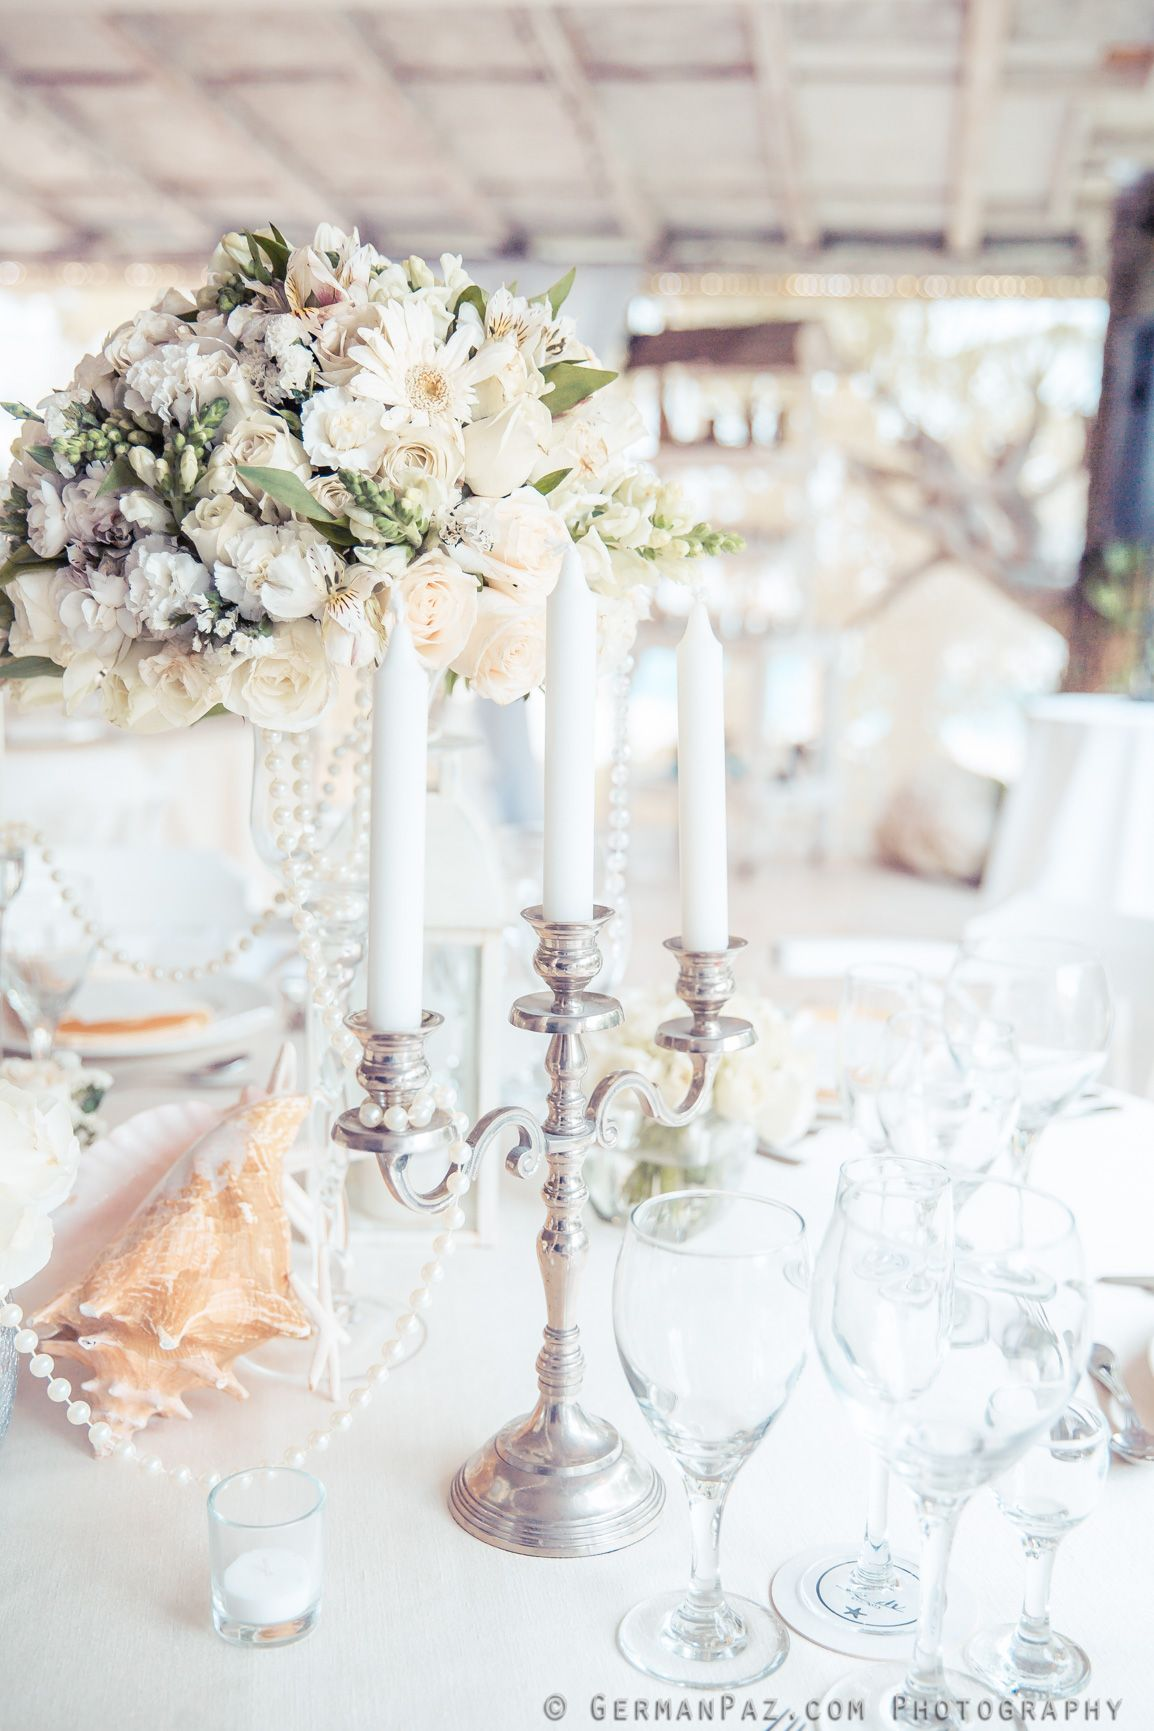 Fresh Flower Centerpieces And Candles Chandelliers- - Venue Kukua Punta